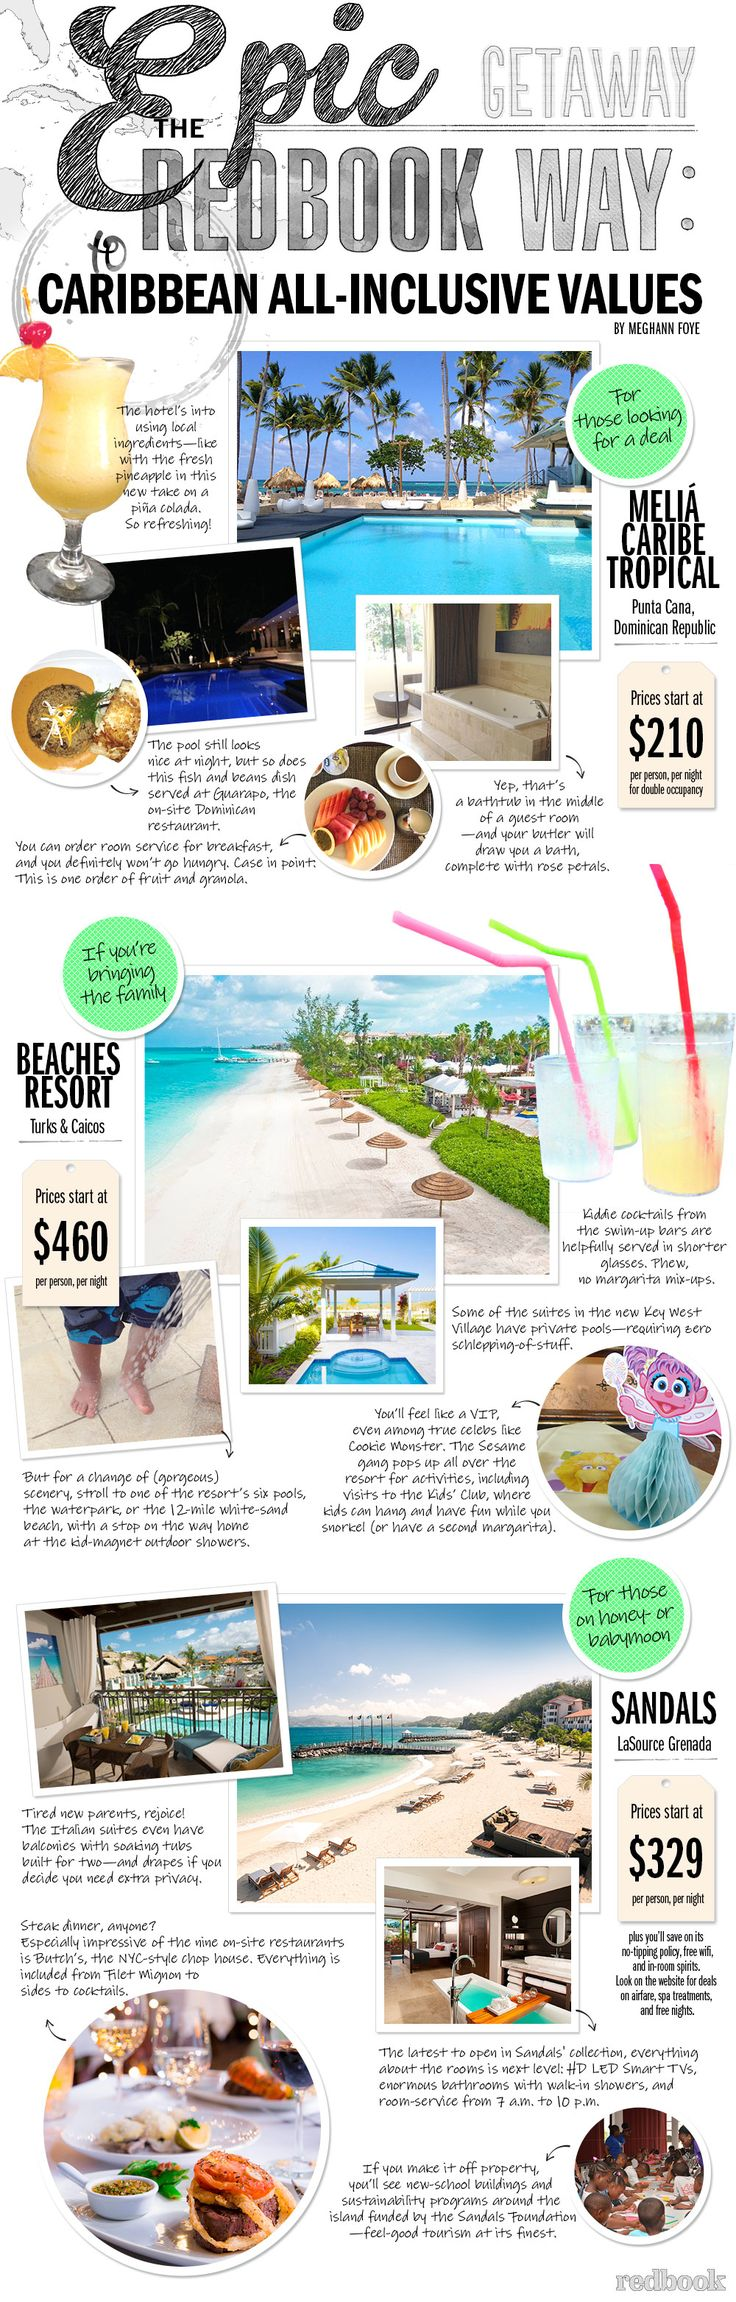 Caribbean Vacation - Best All-Inclusive Caribbean Resorts - Redbook